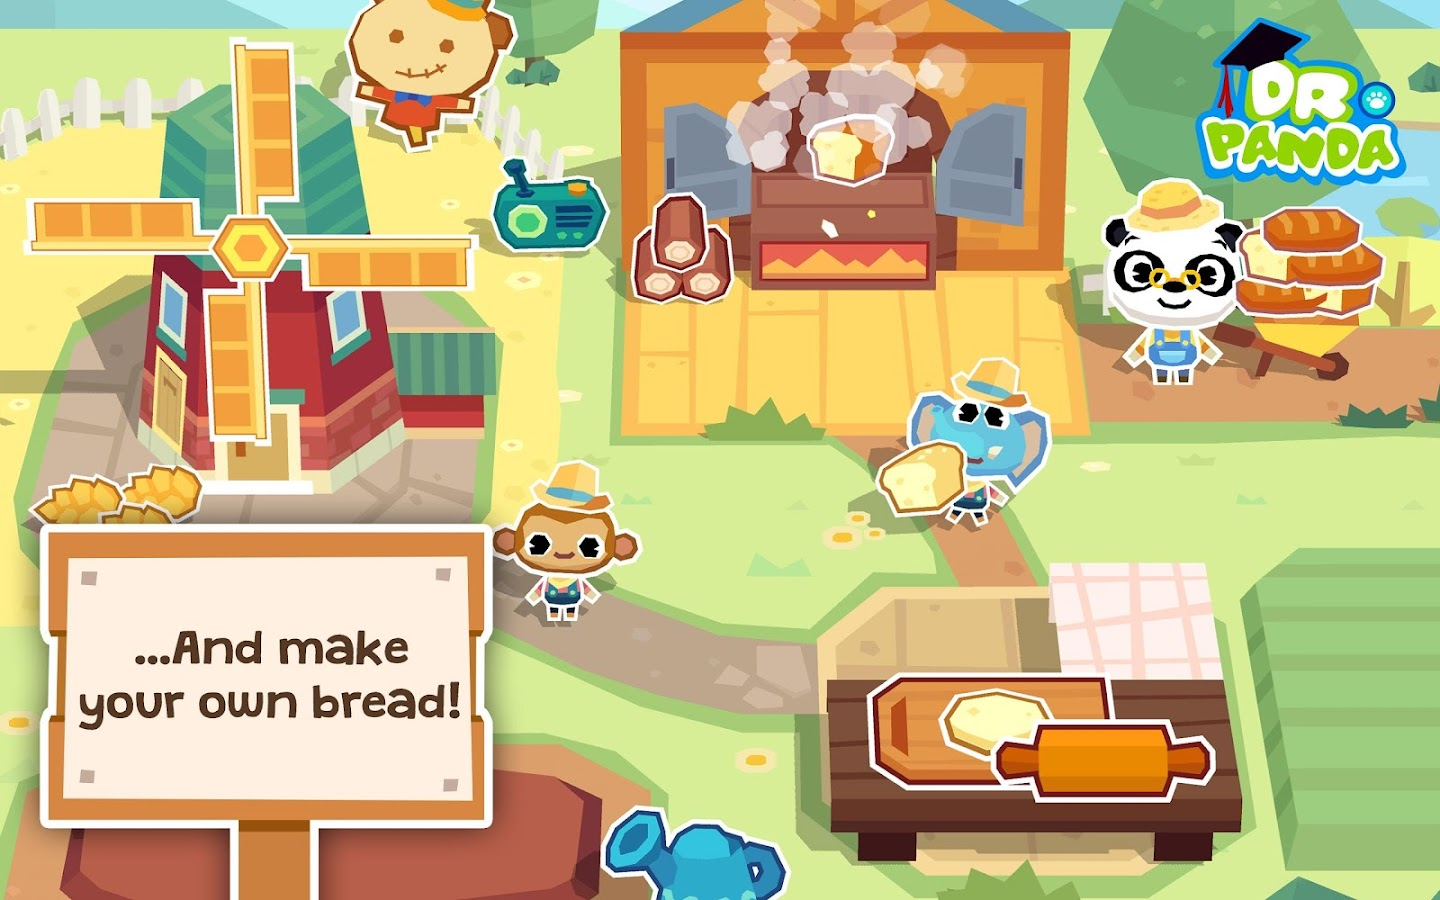 Dr. Panda Farm Screenshot 3